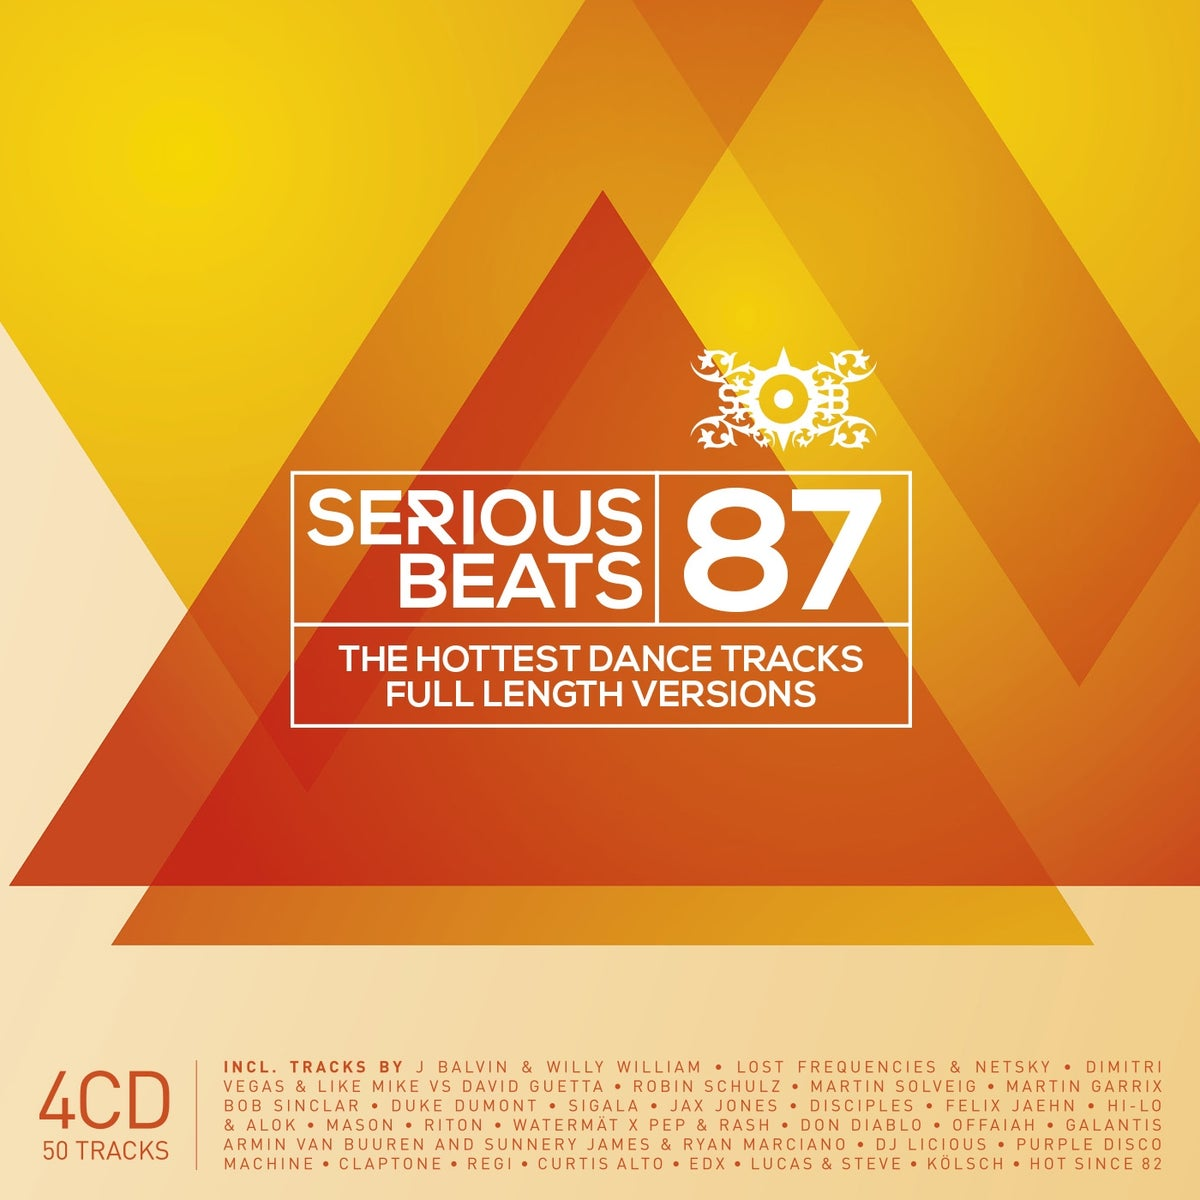 Image of VARIOUS ARTISTS -  SERIOUS BEATS 87 (4CD)